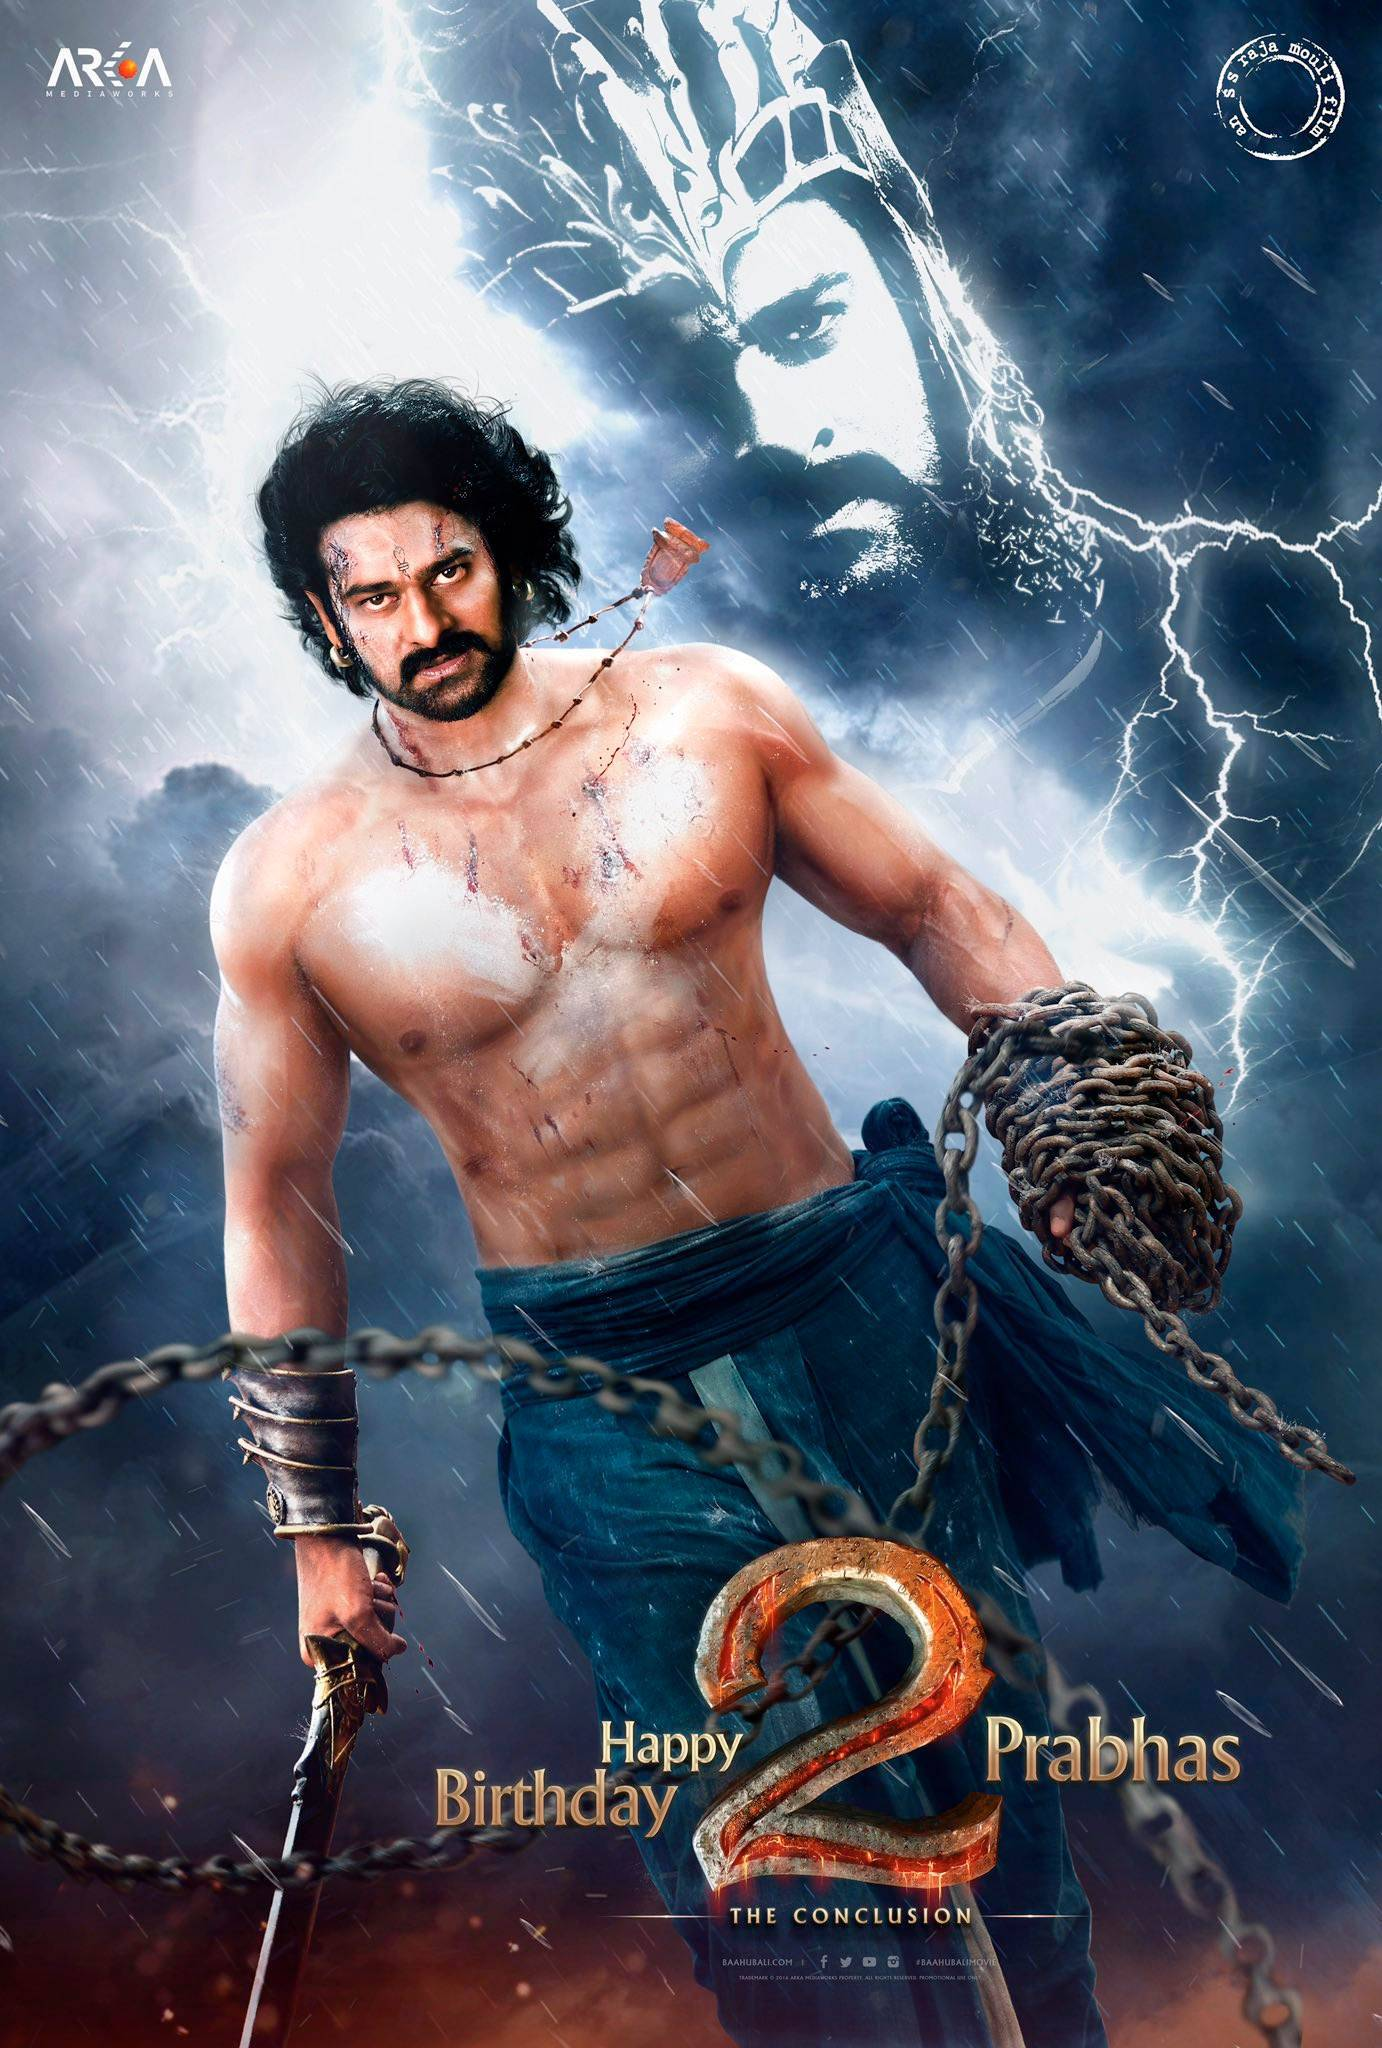 baahubali 2: prabhas makes thunderous entry in the first look, see